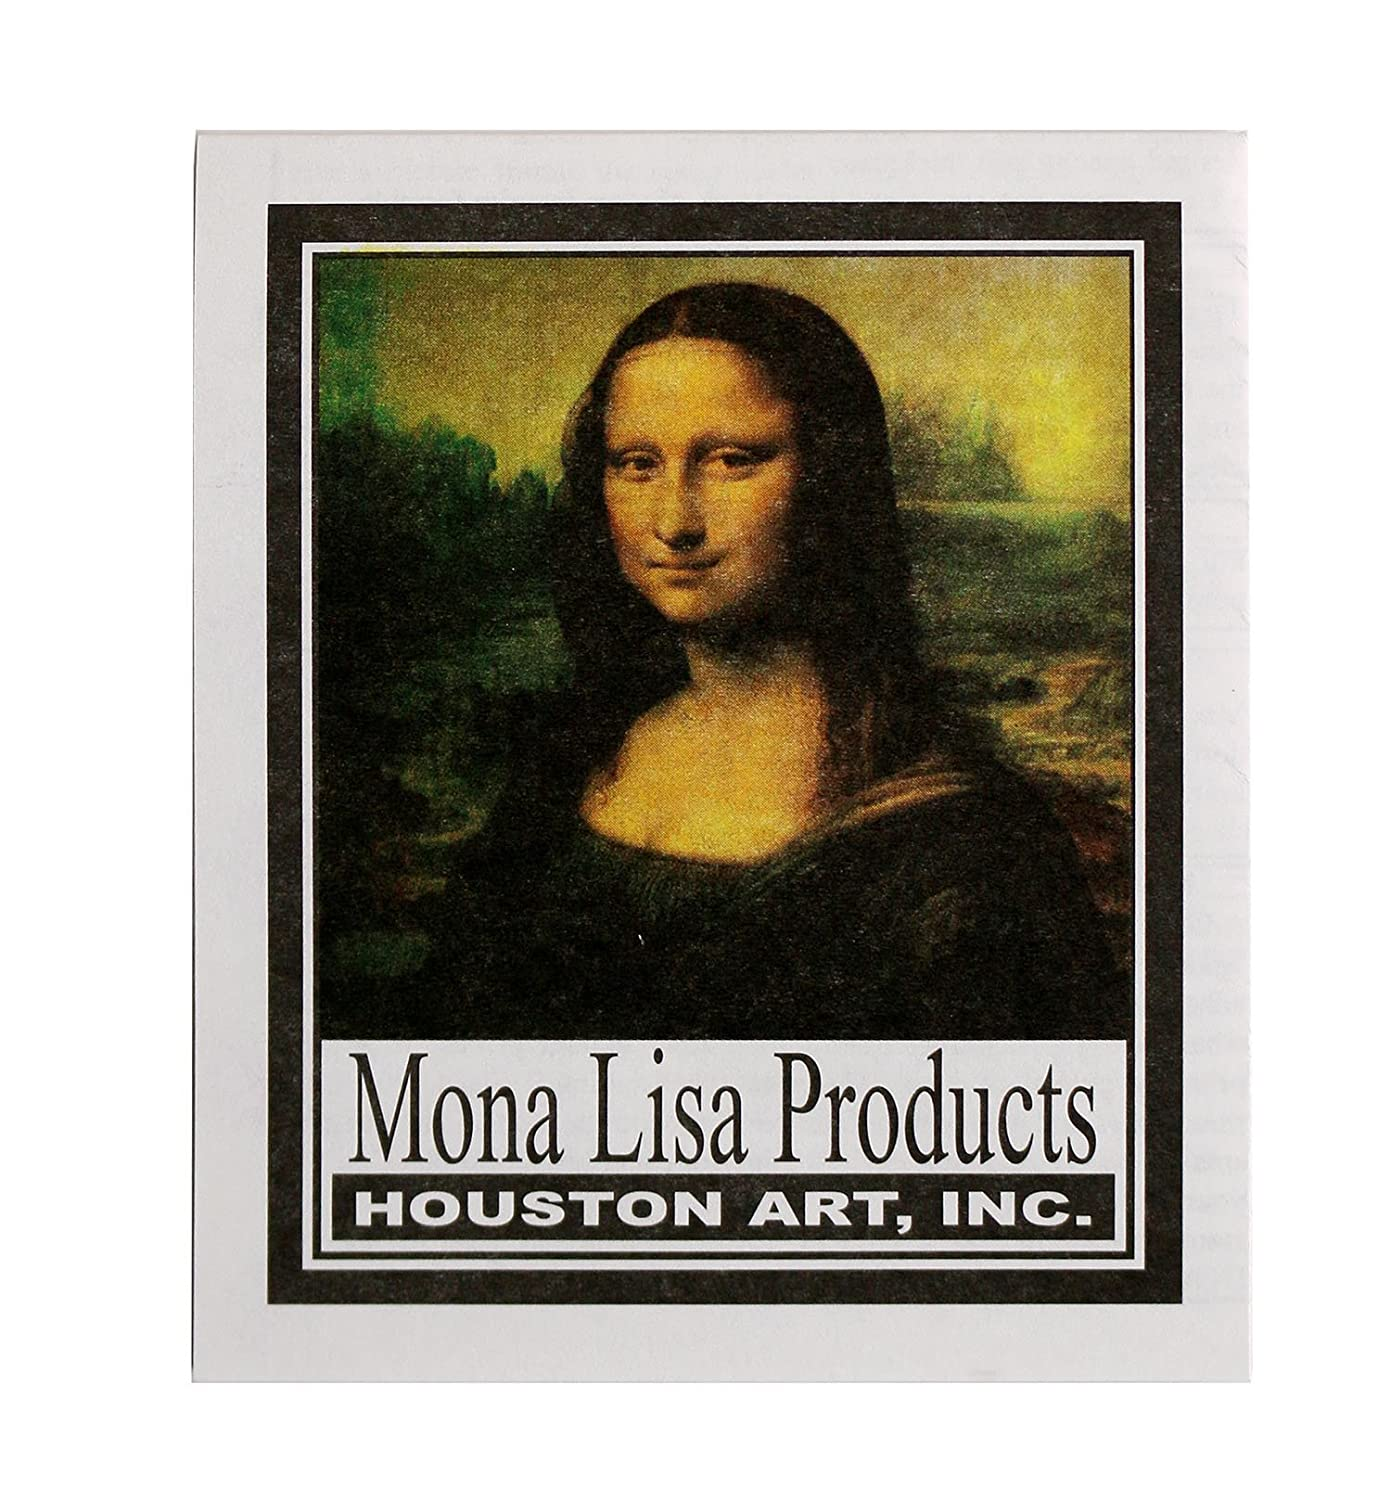 Speedball 10206 Mona Lisa Composition Silver Metal Leaf Sheets 25 Pack Metal Leafing Sheets Made of Aluminum